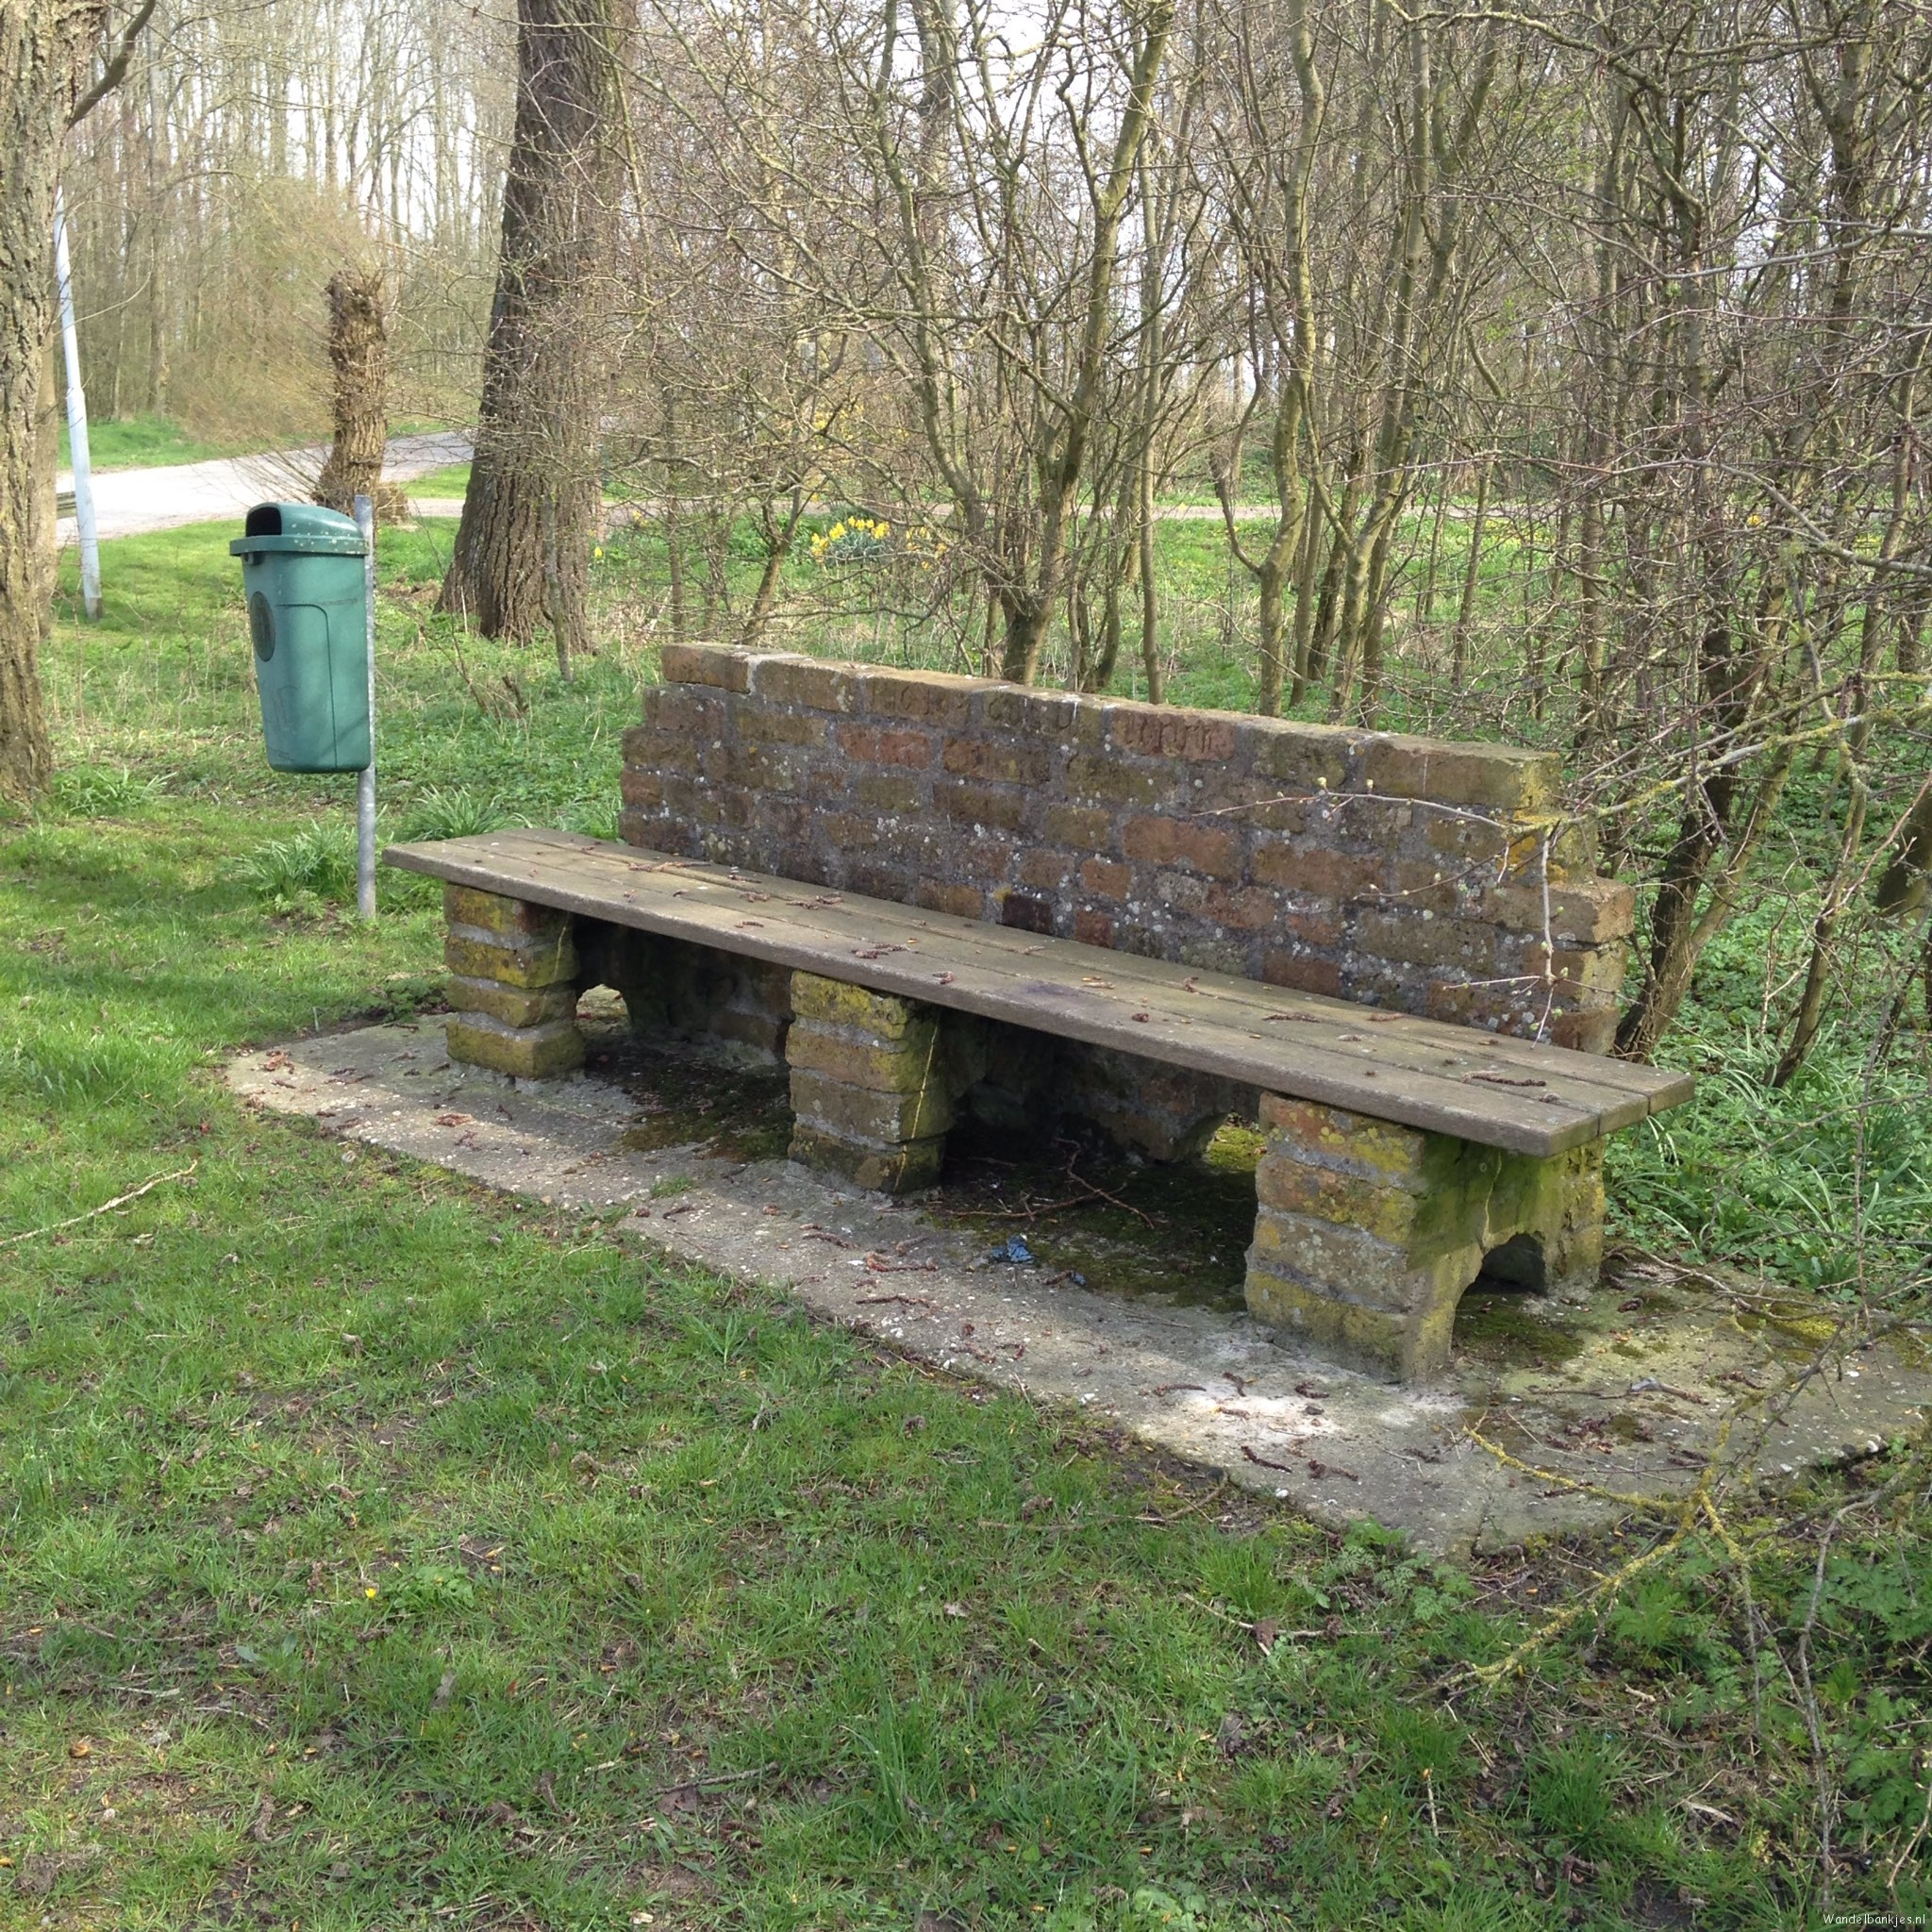 rt-martenvdmolen-nice-old-walking-bench-at-minnertsga-fr-walking-benches-https-t-co-7k9fltu4qi